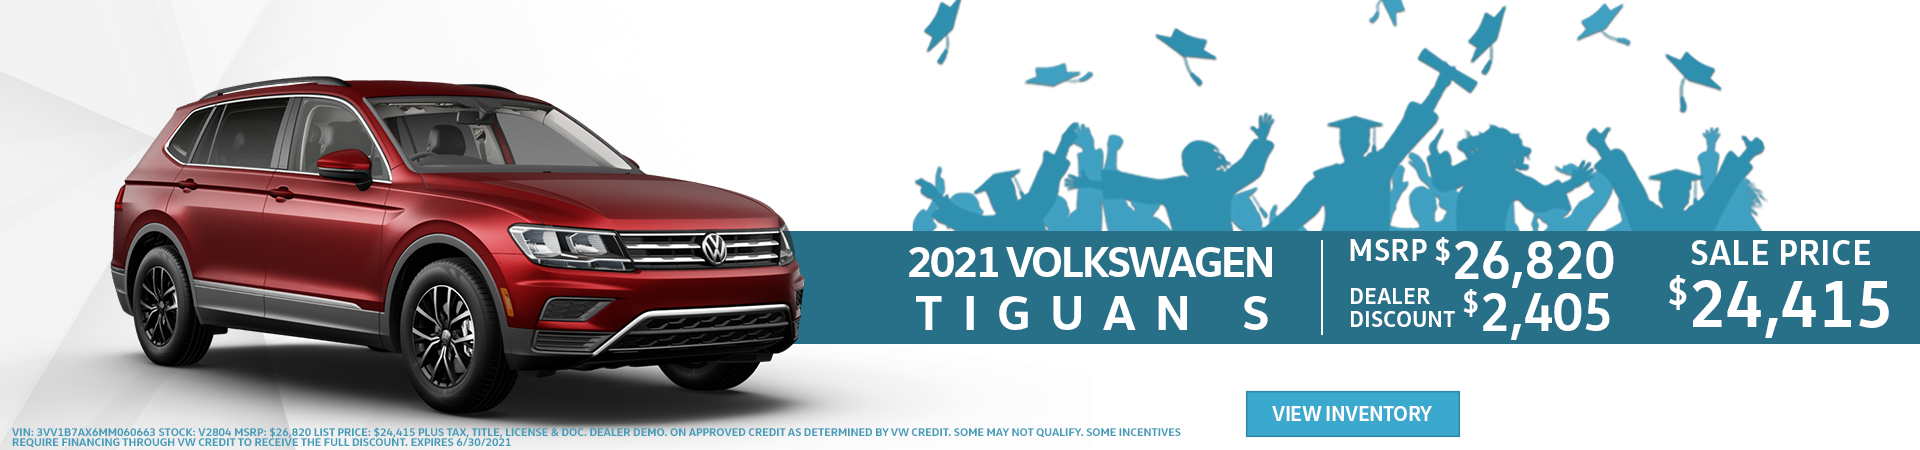 Red 2021 Volkswagen Tiguan Offered for $24,415